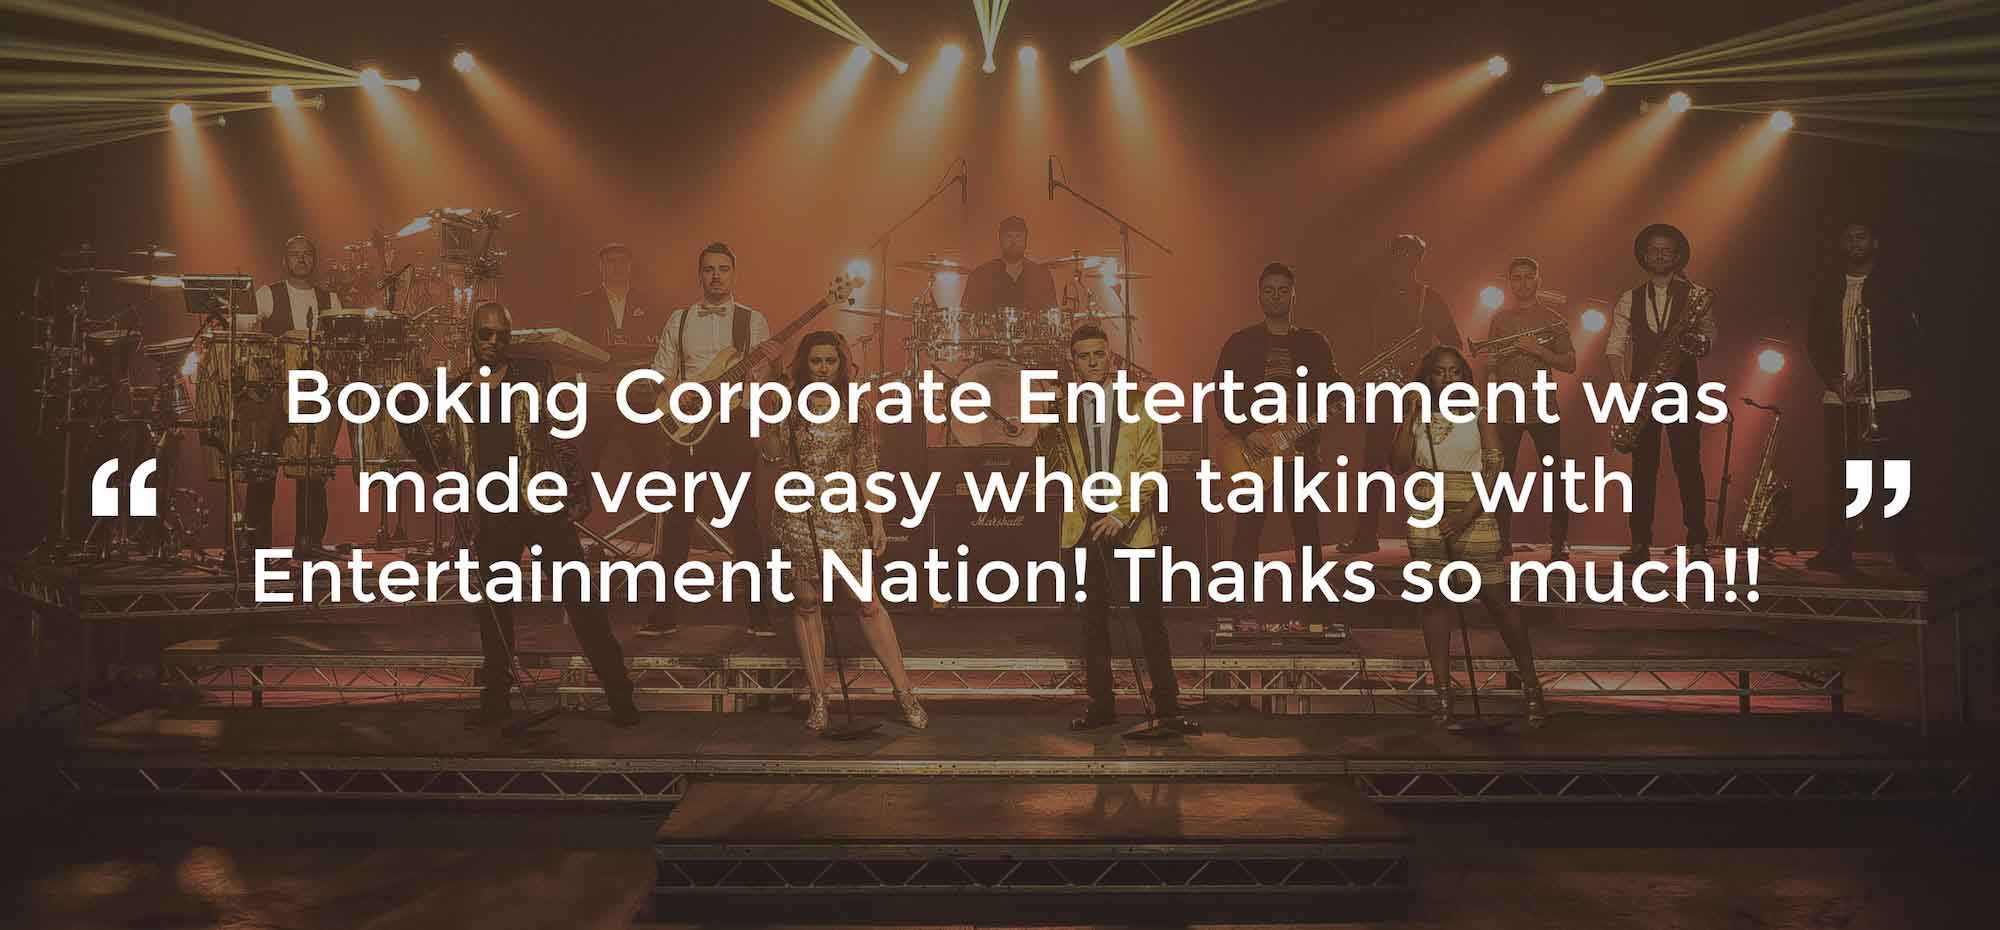 Review of Corporate Entertainment Sheffield